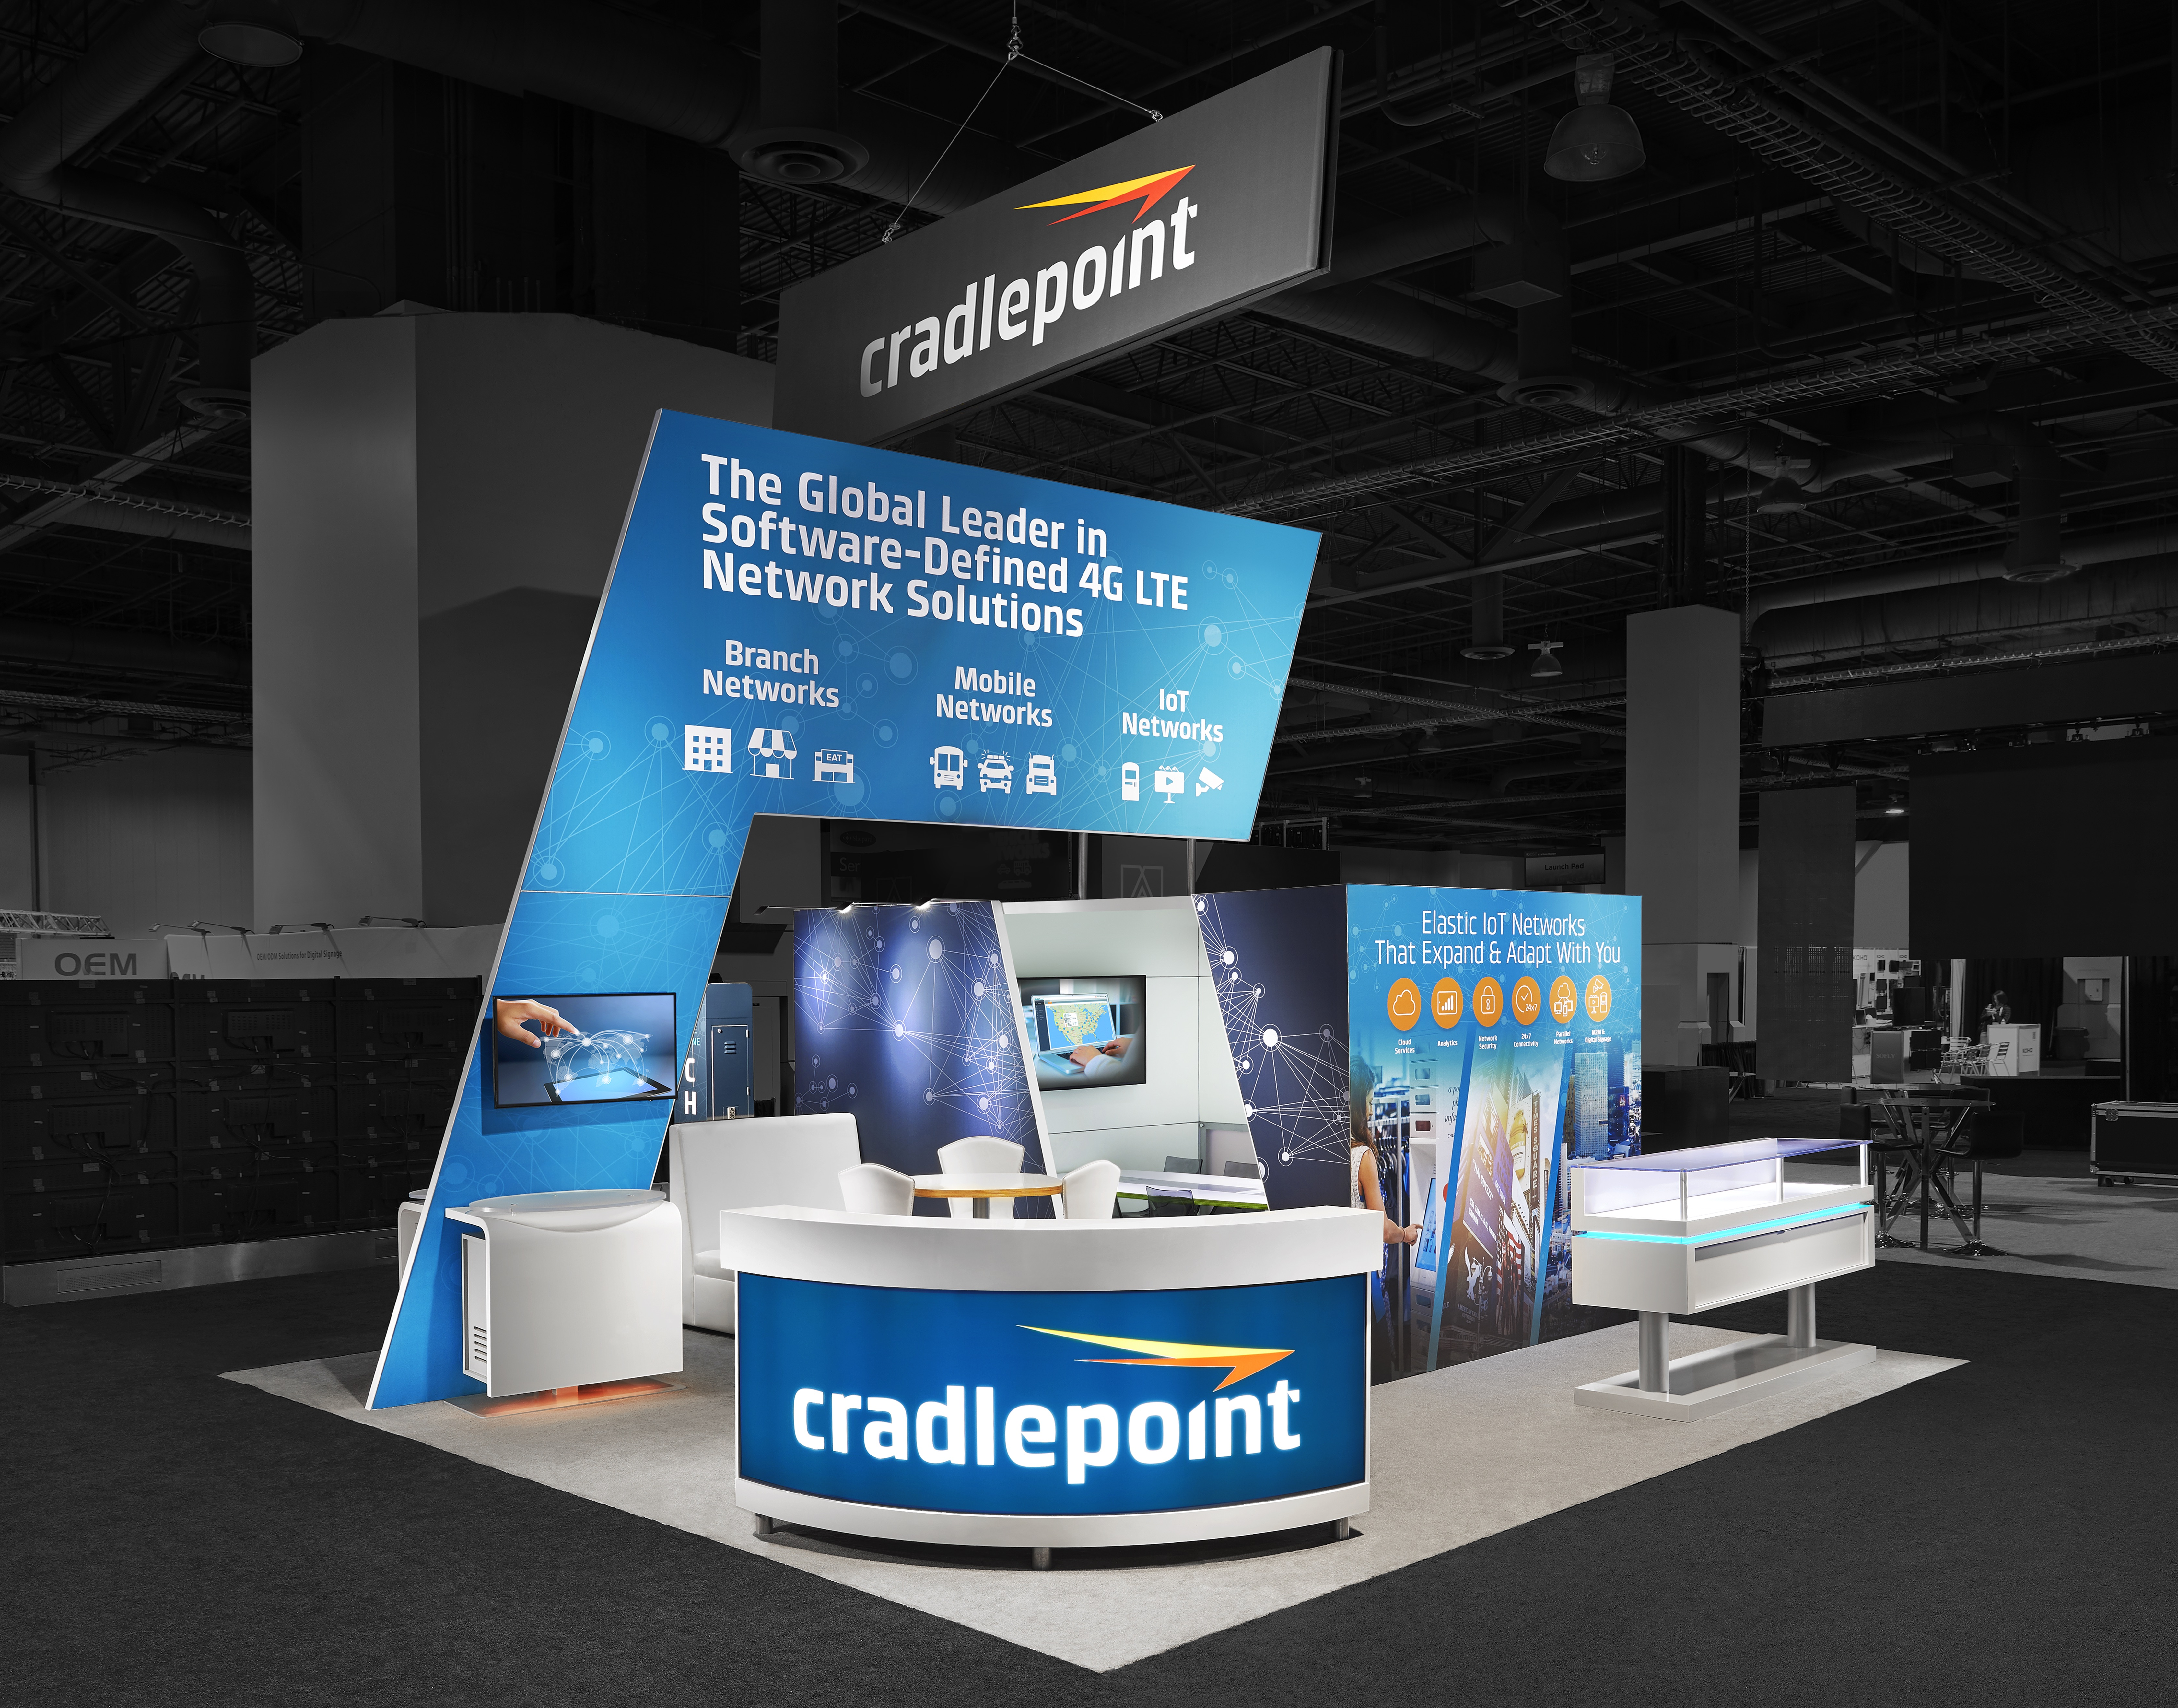 Case Study: Renting Spells Success for Cradlepoint